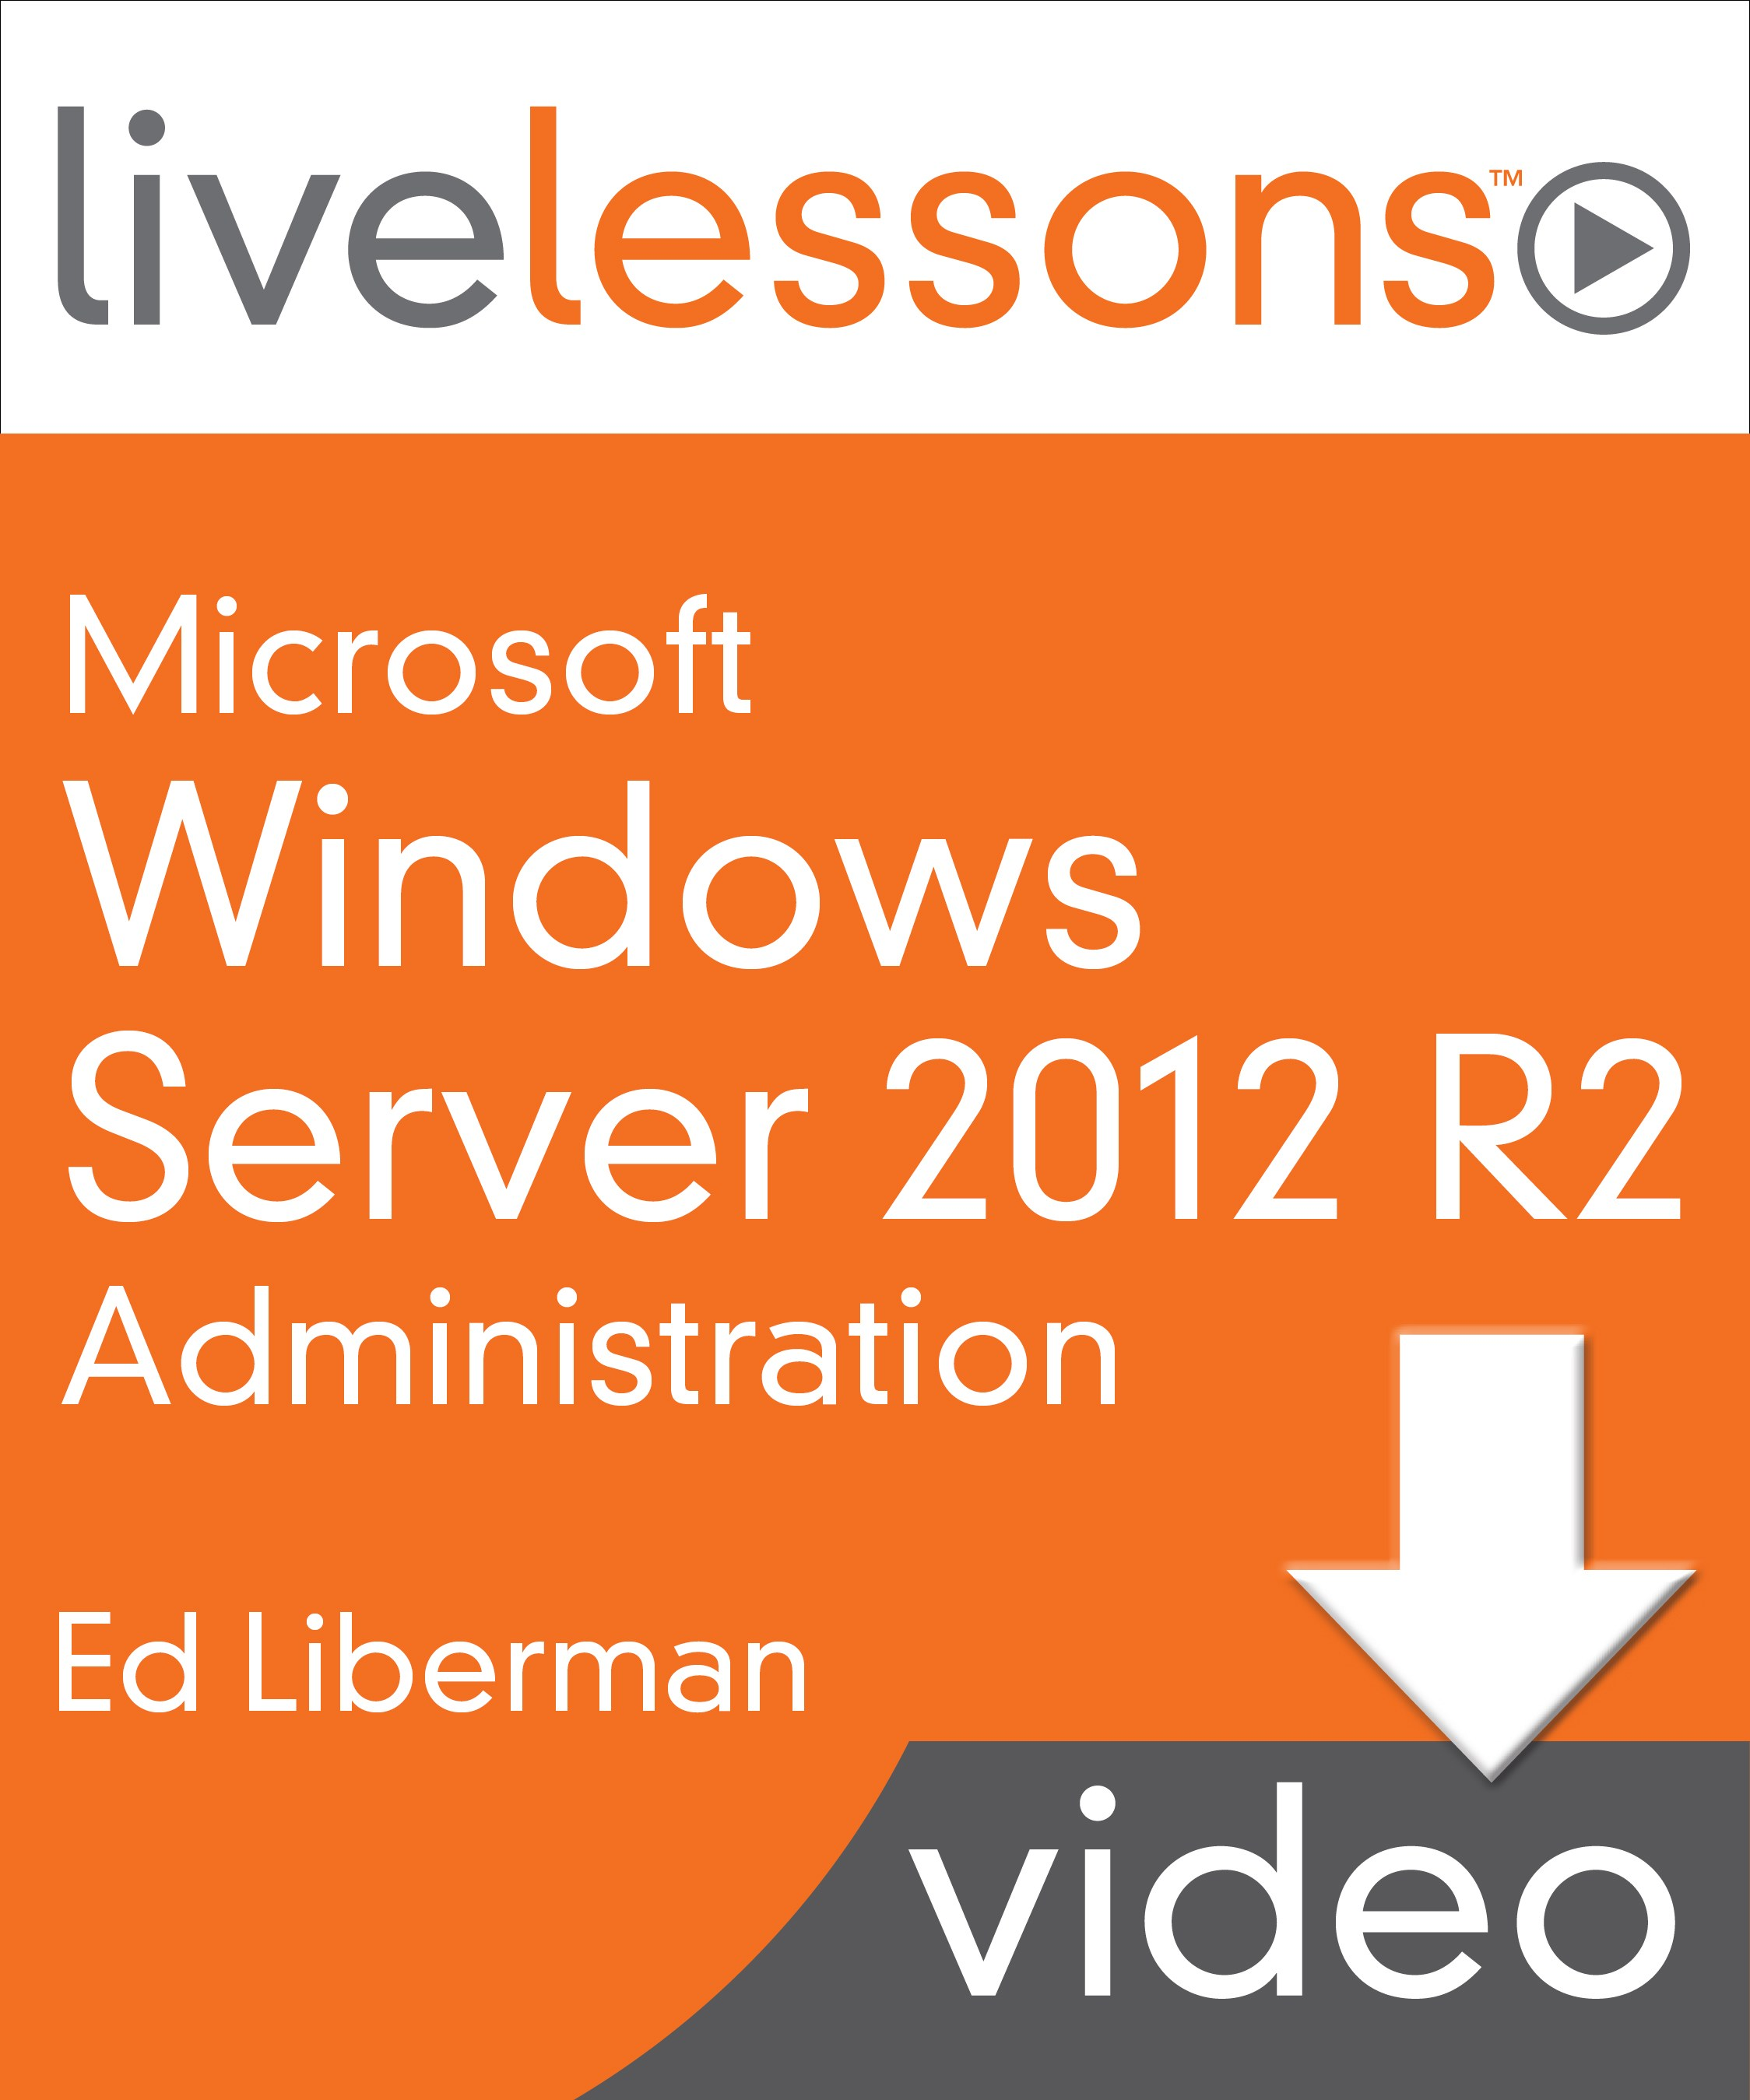 Lesson 11: Introduction to Hyper-V, Downloadable Version